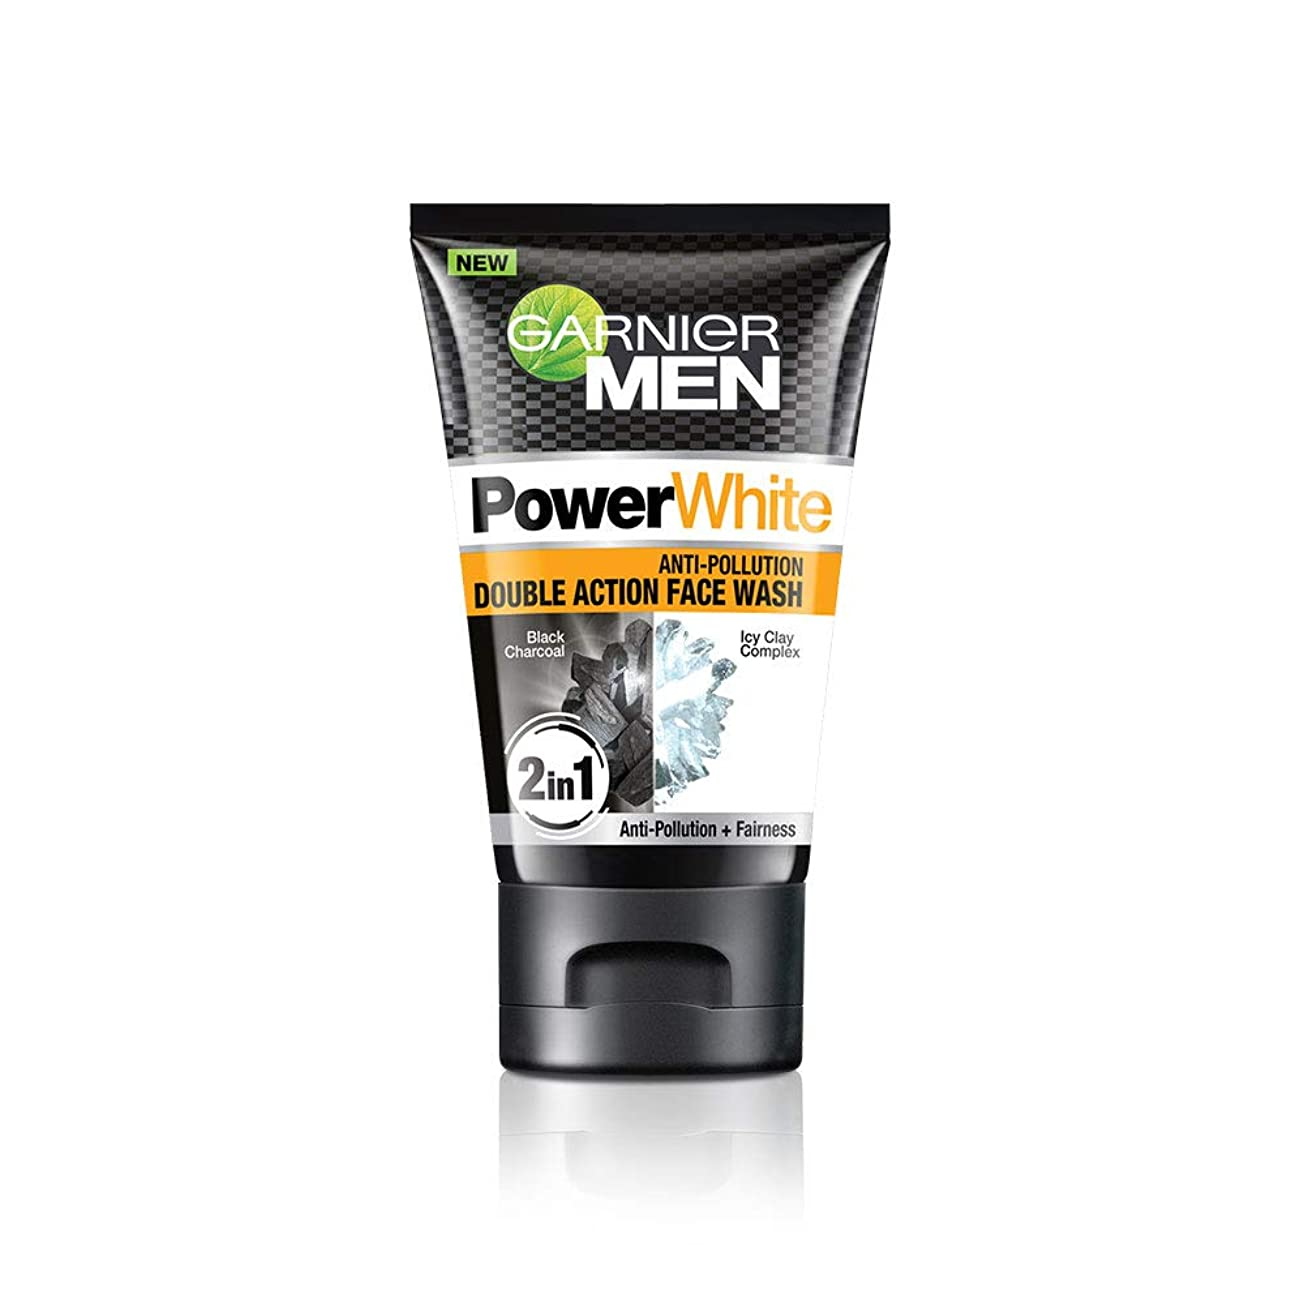 ウール元気キャラクターGarnier Men Power White Anti-Pollution Double Action Facewash, 100gm